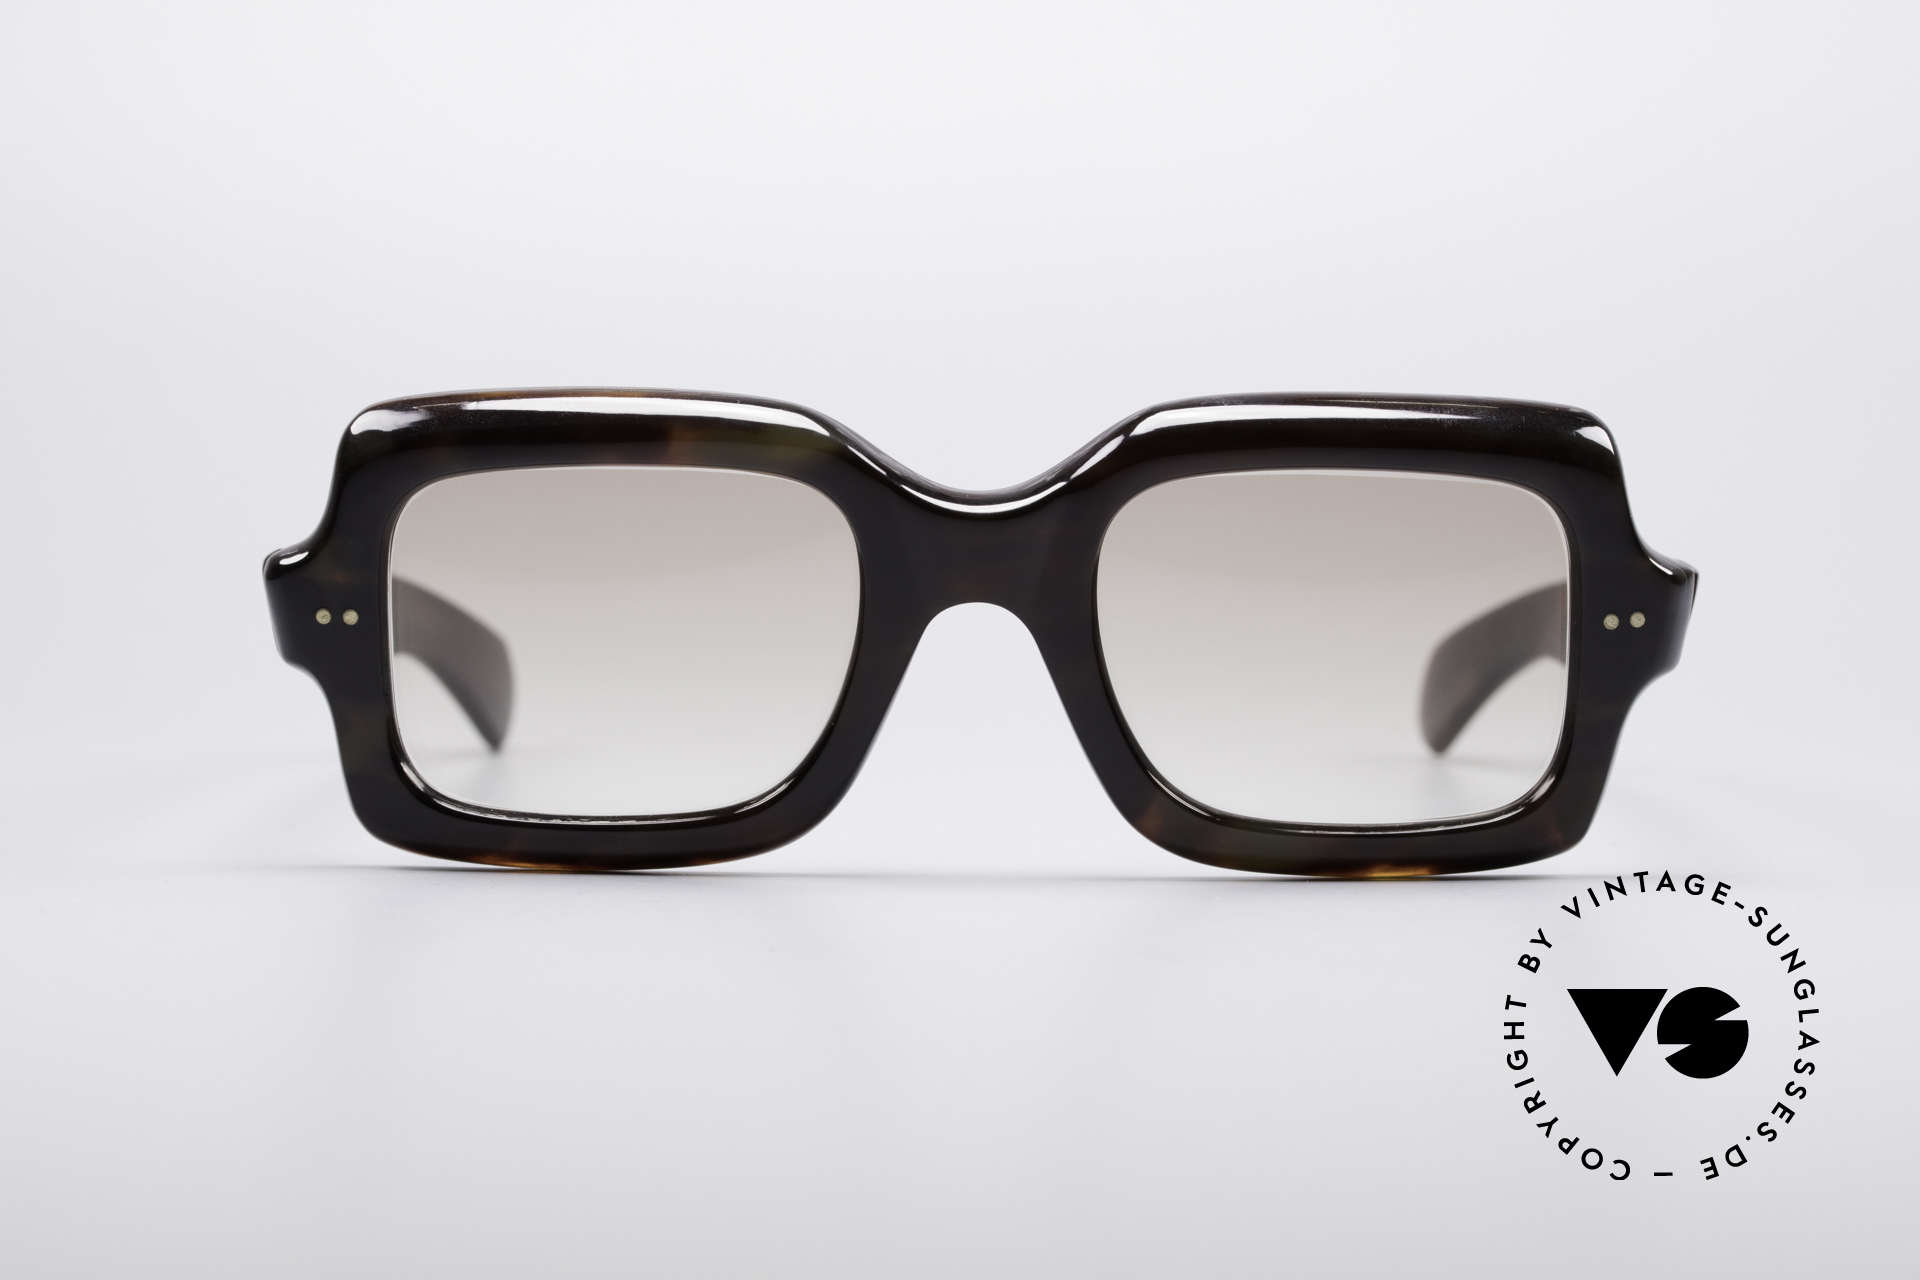 e464c611729 You may also like these glasses. Neostyle VIP 100 Classic 80 s Sunglasses  Details